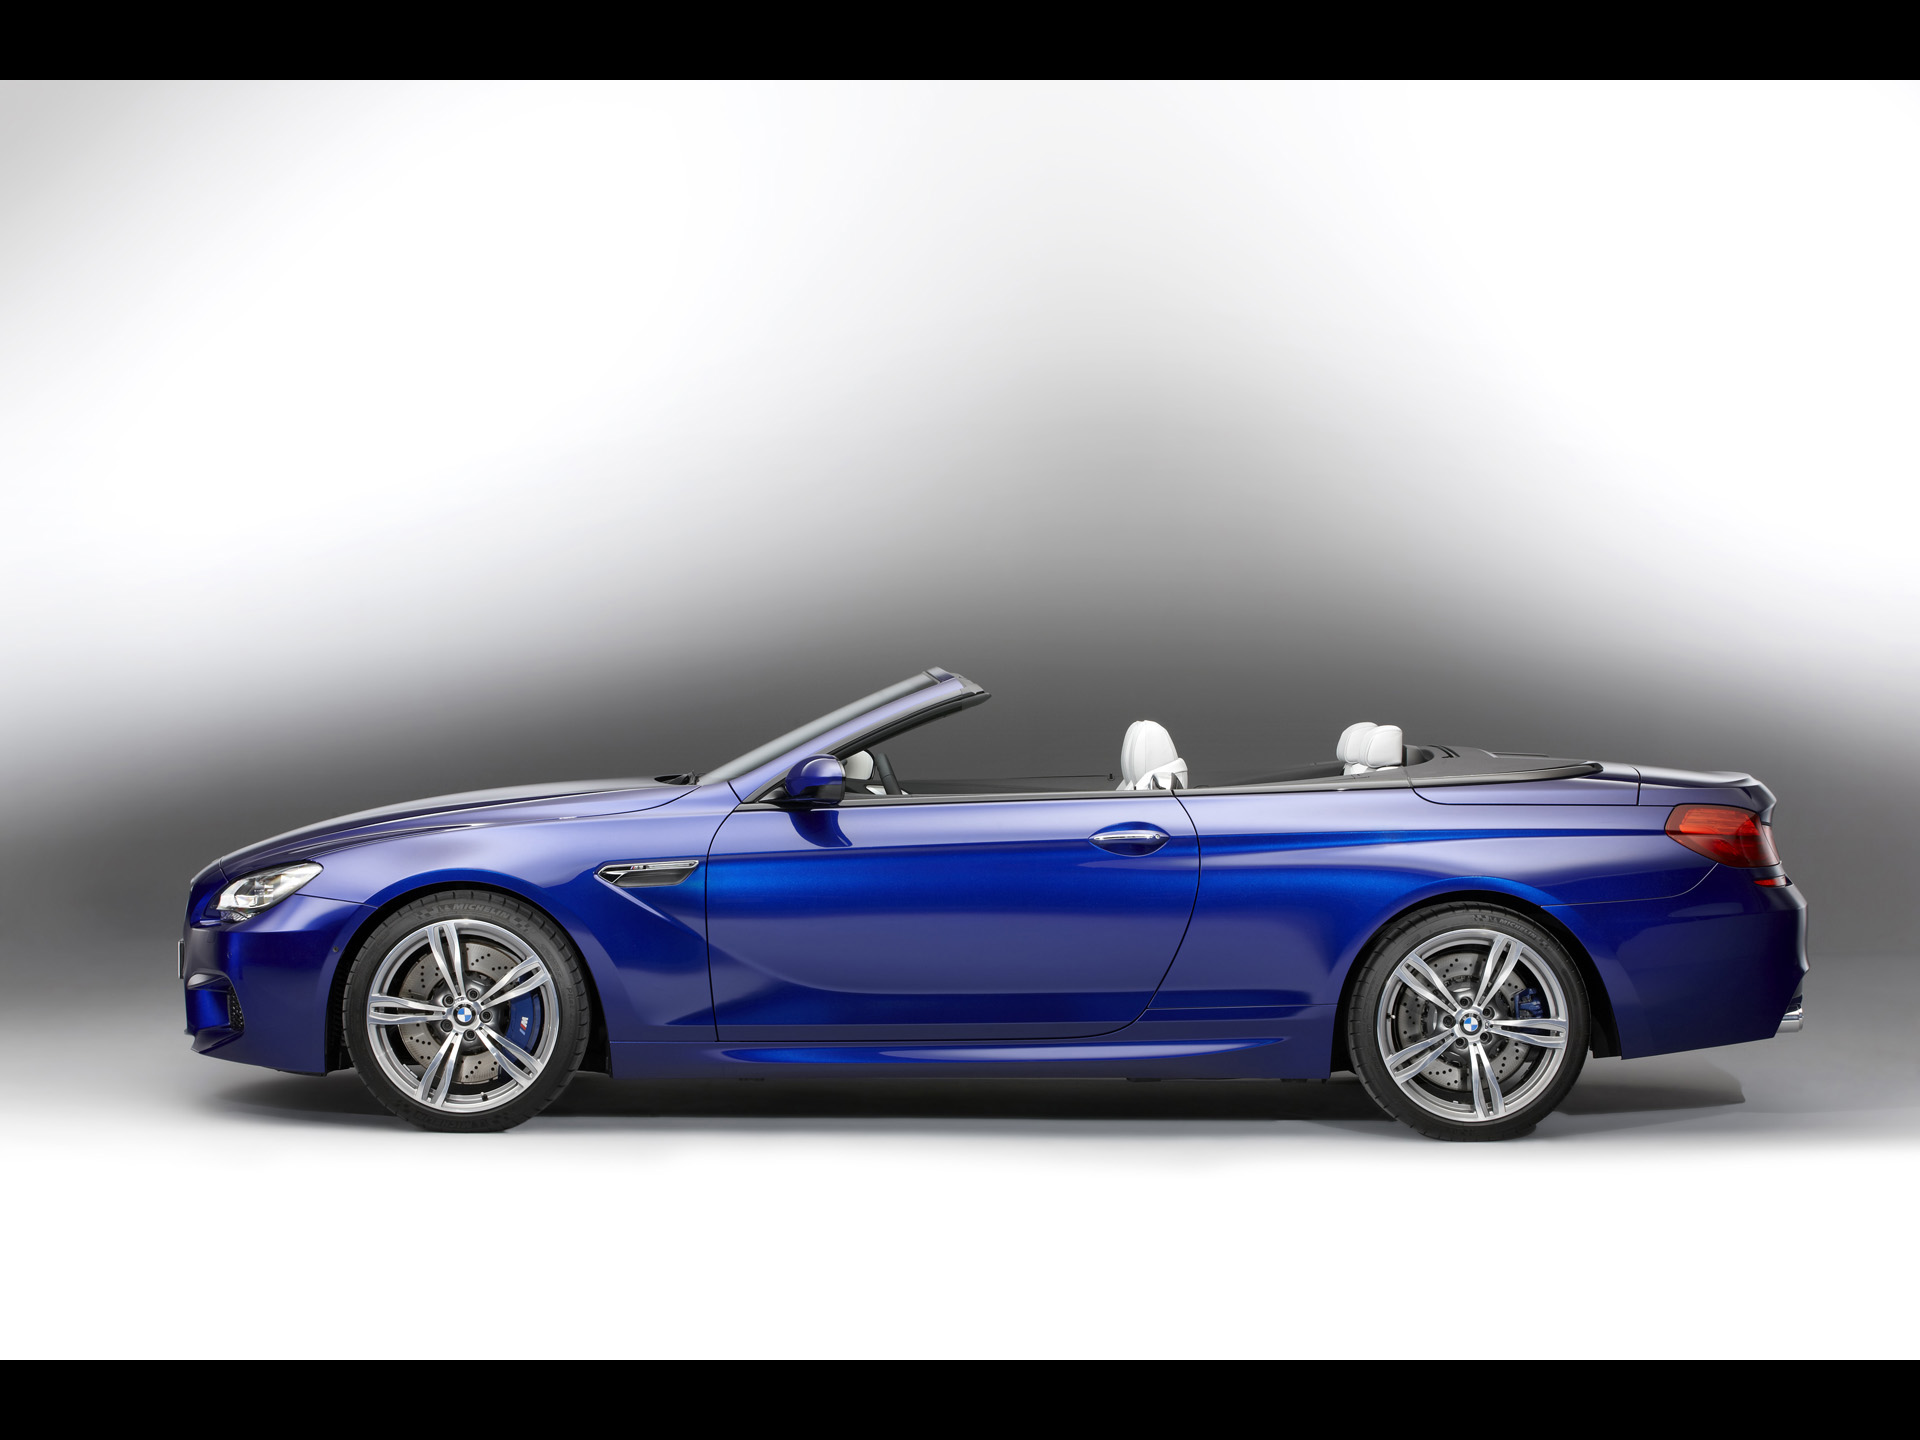 bmw m6 cabrio bmw wallpaper 29312356 fanpop. Black Bedroom Furniture Sets. Home Design Ideas